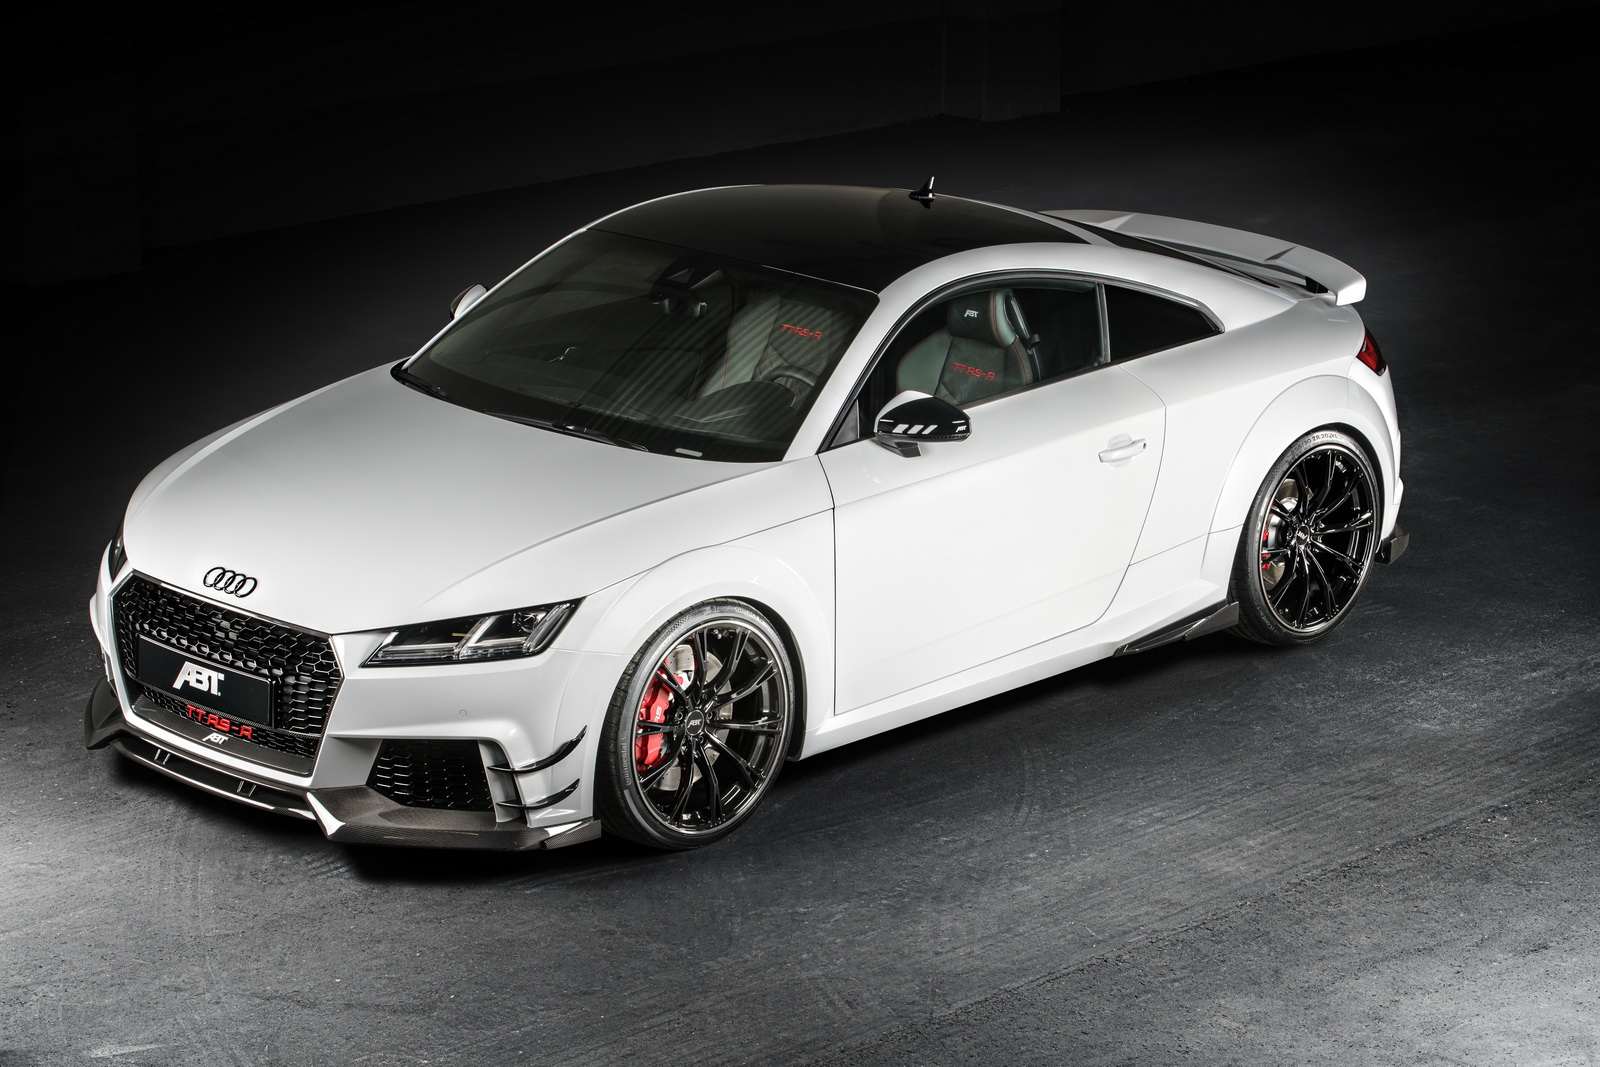 Audi_TT_RS-R_by_ABT_02